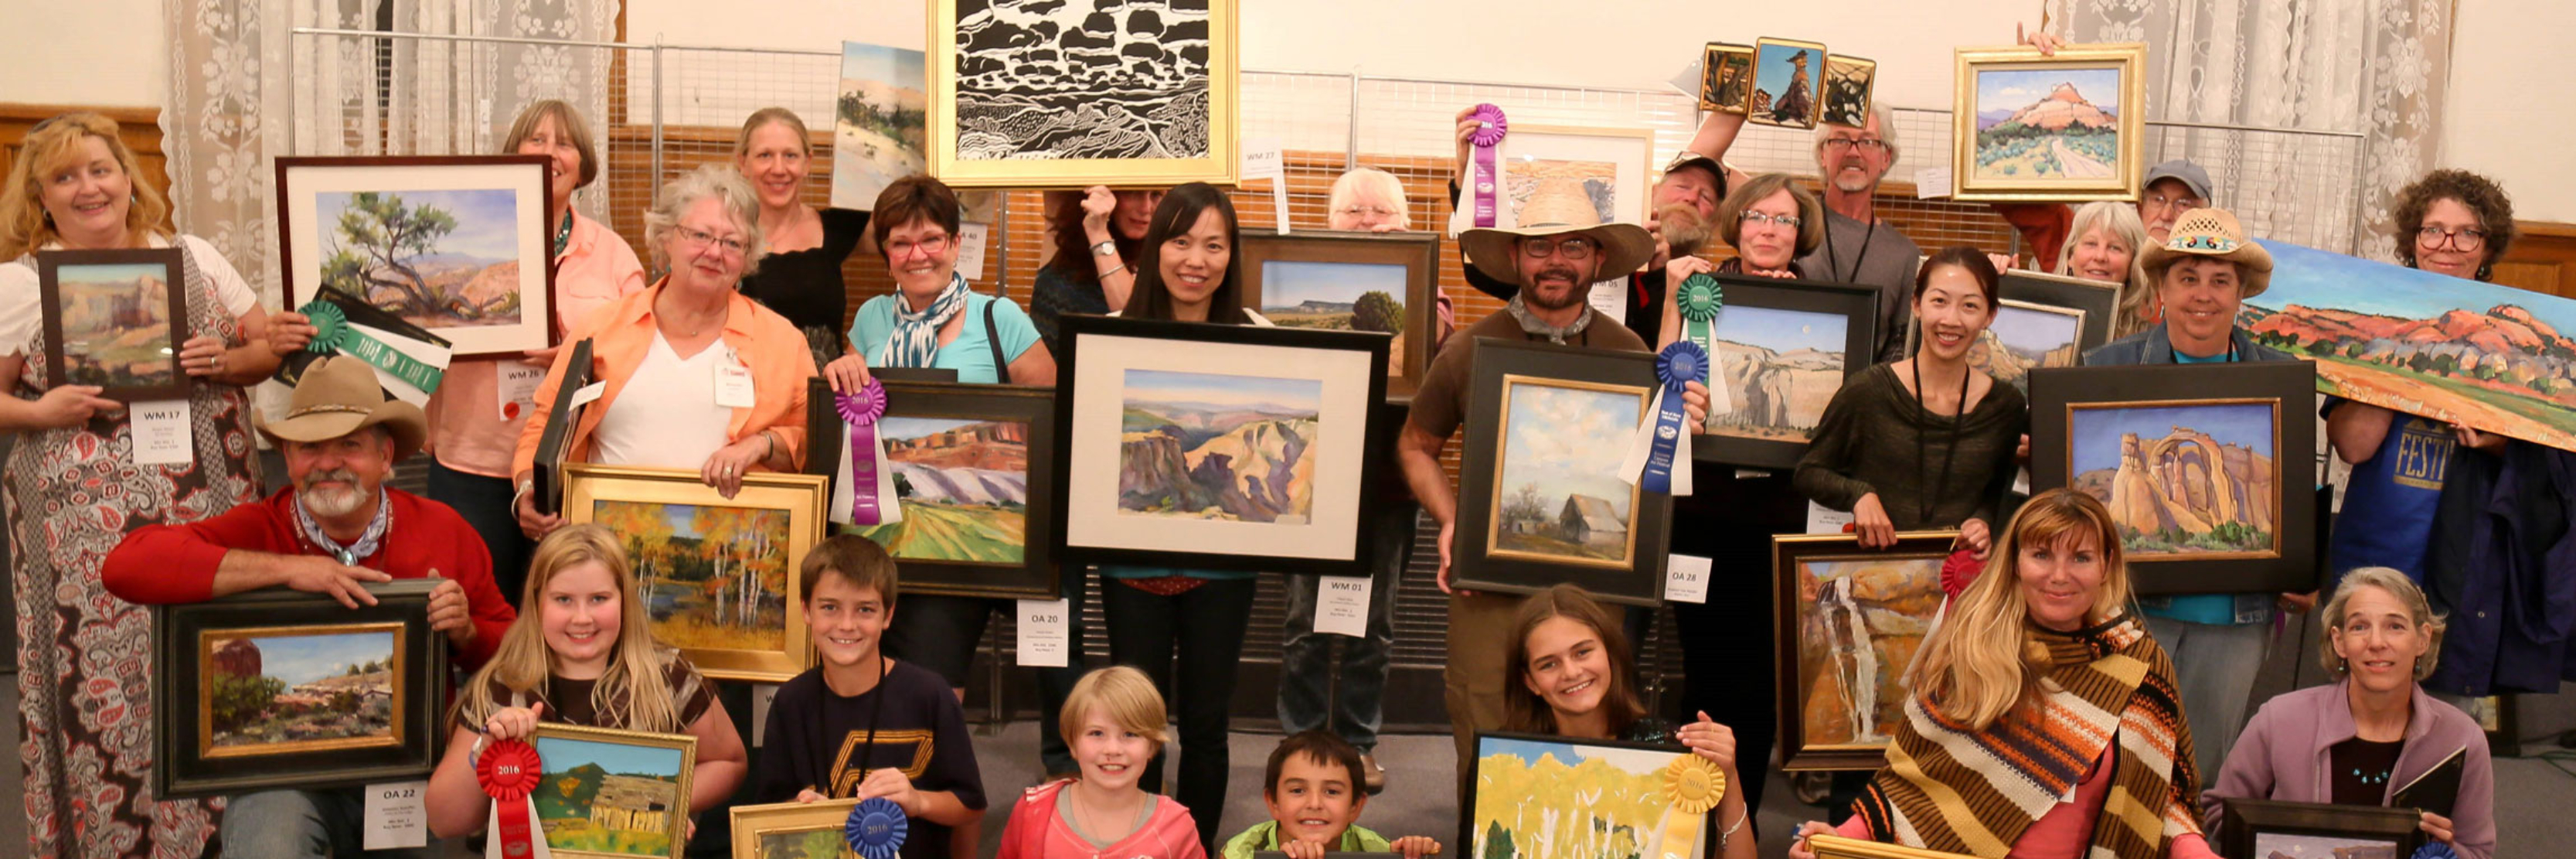 festival-painting-group-winners